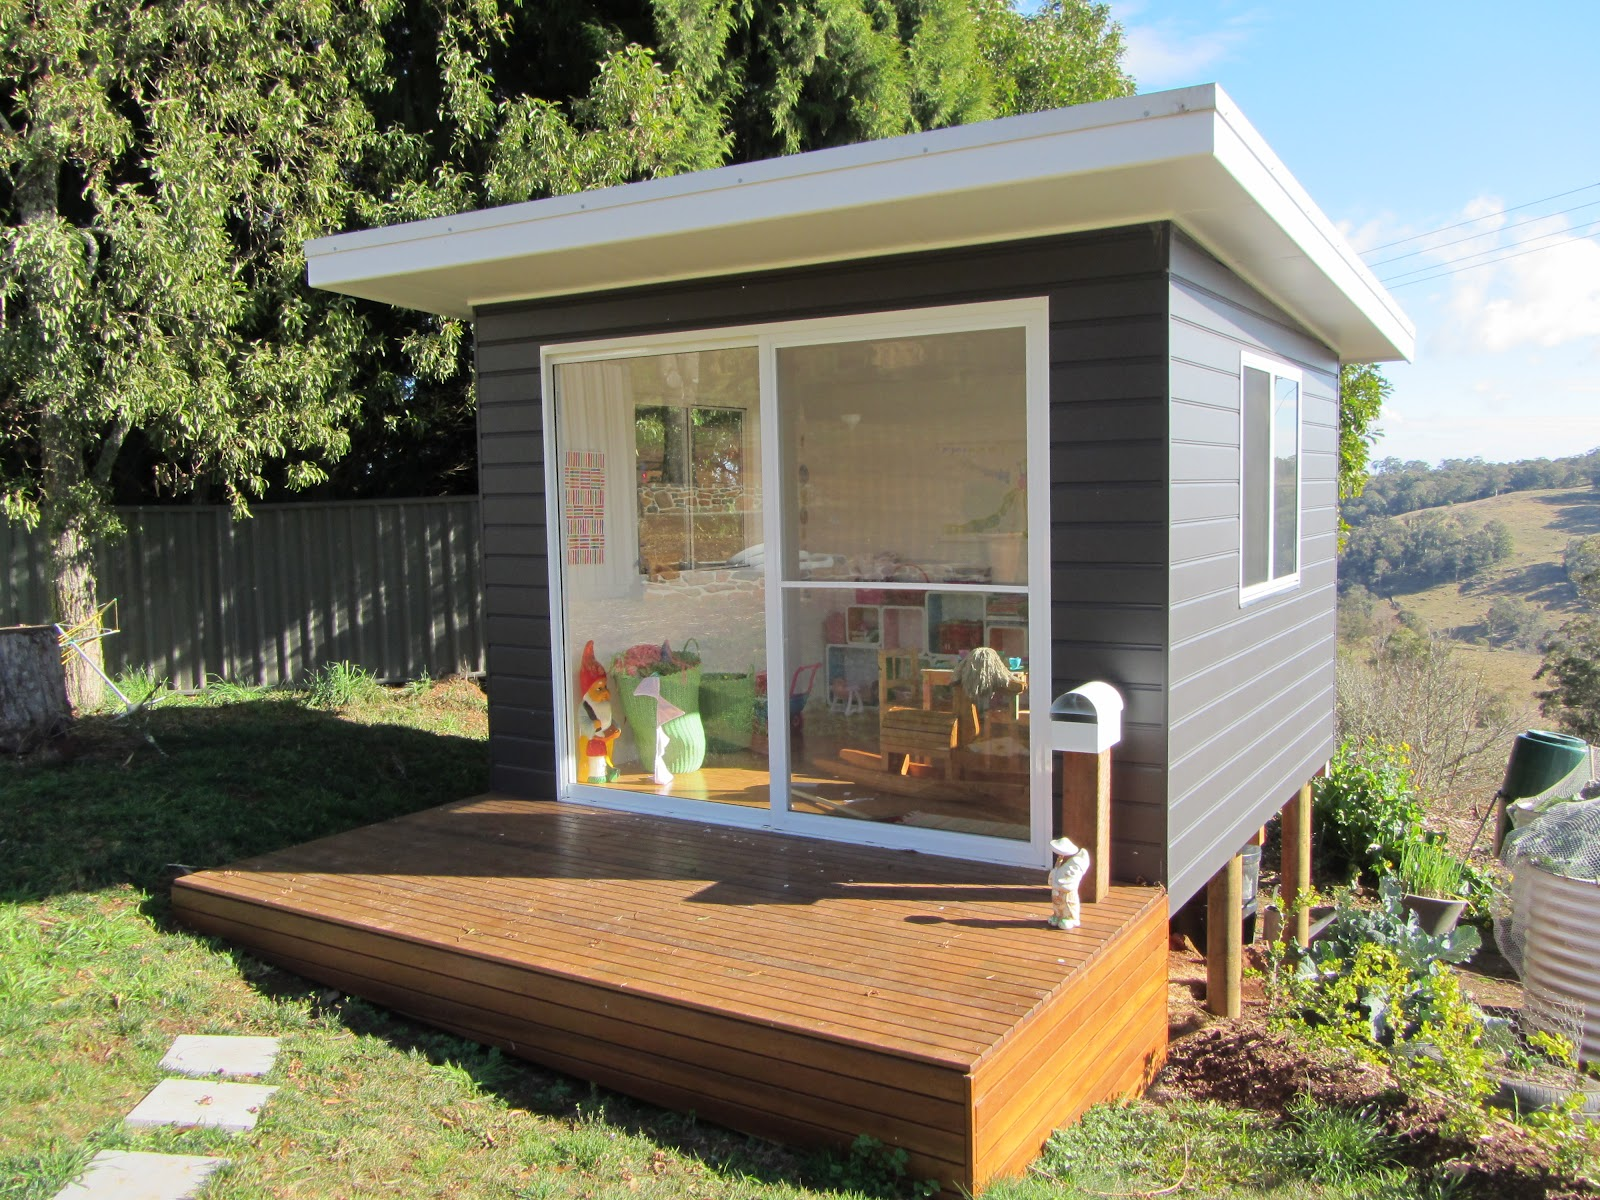 Thom haus handmade cubby house for children for Haus design ideas